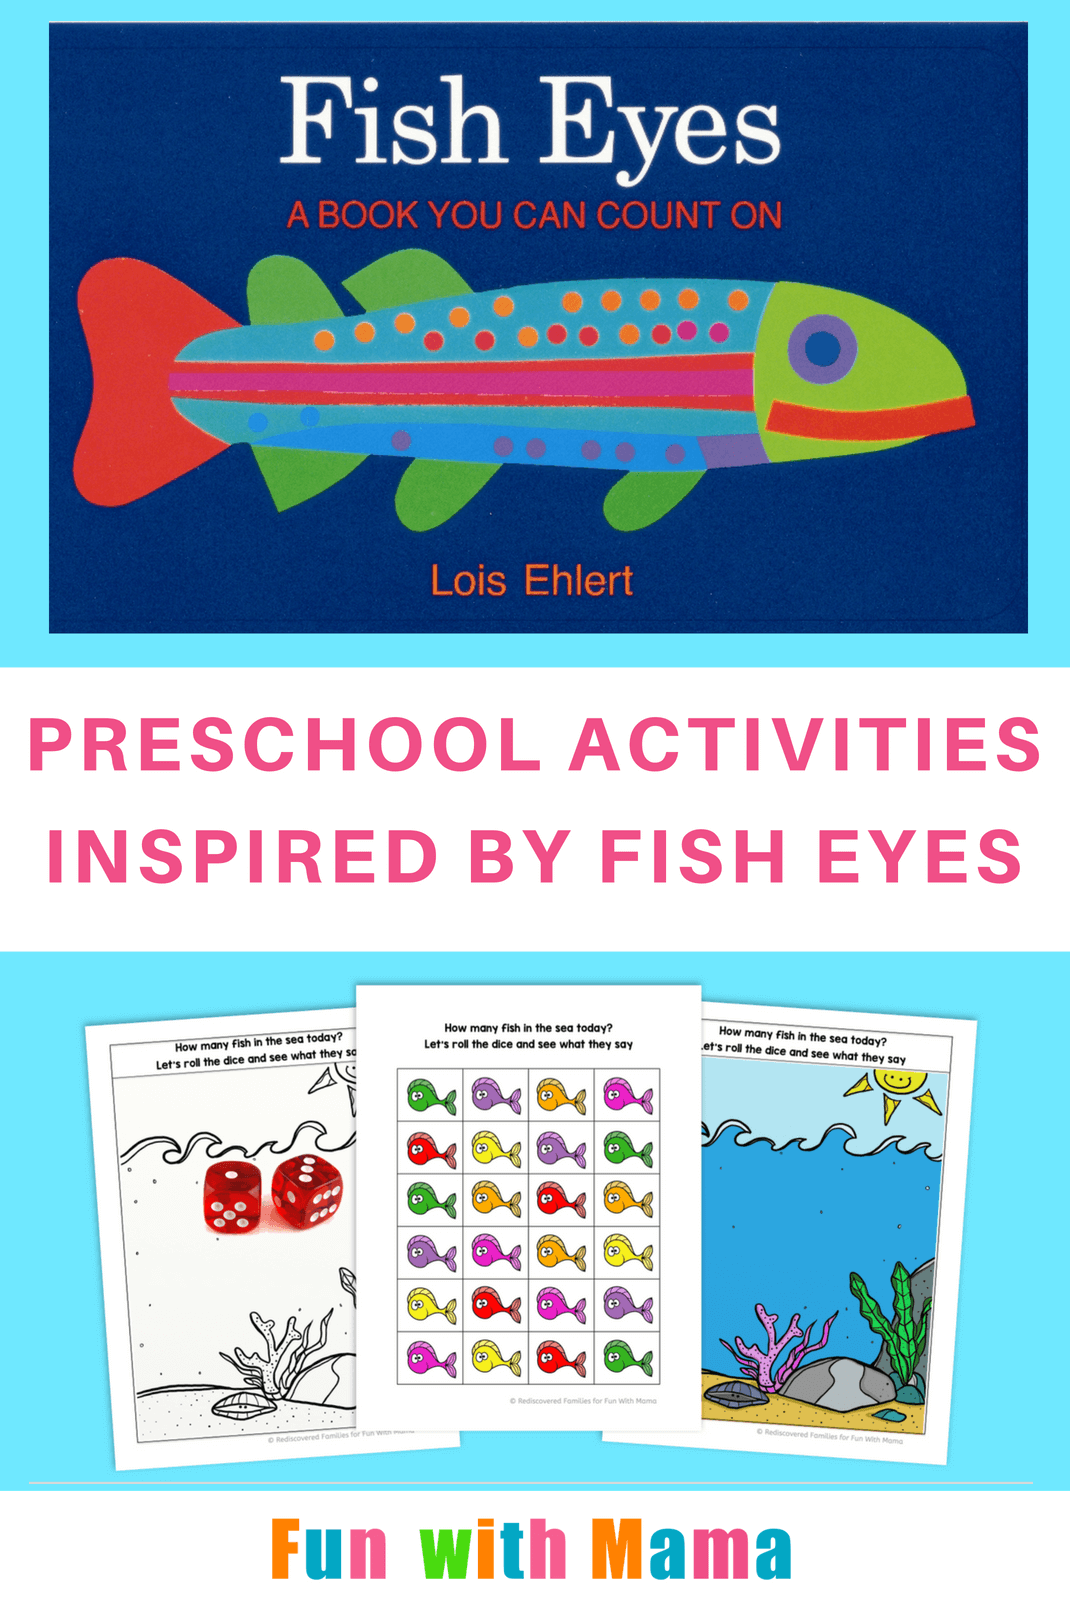 Worksheets About Fish